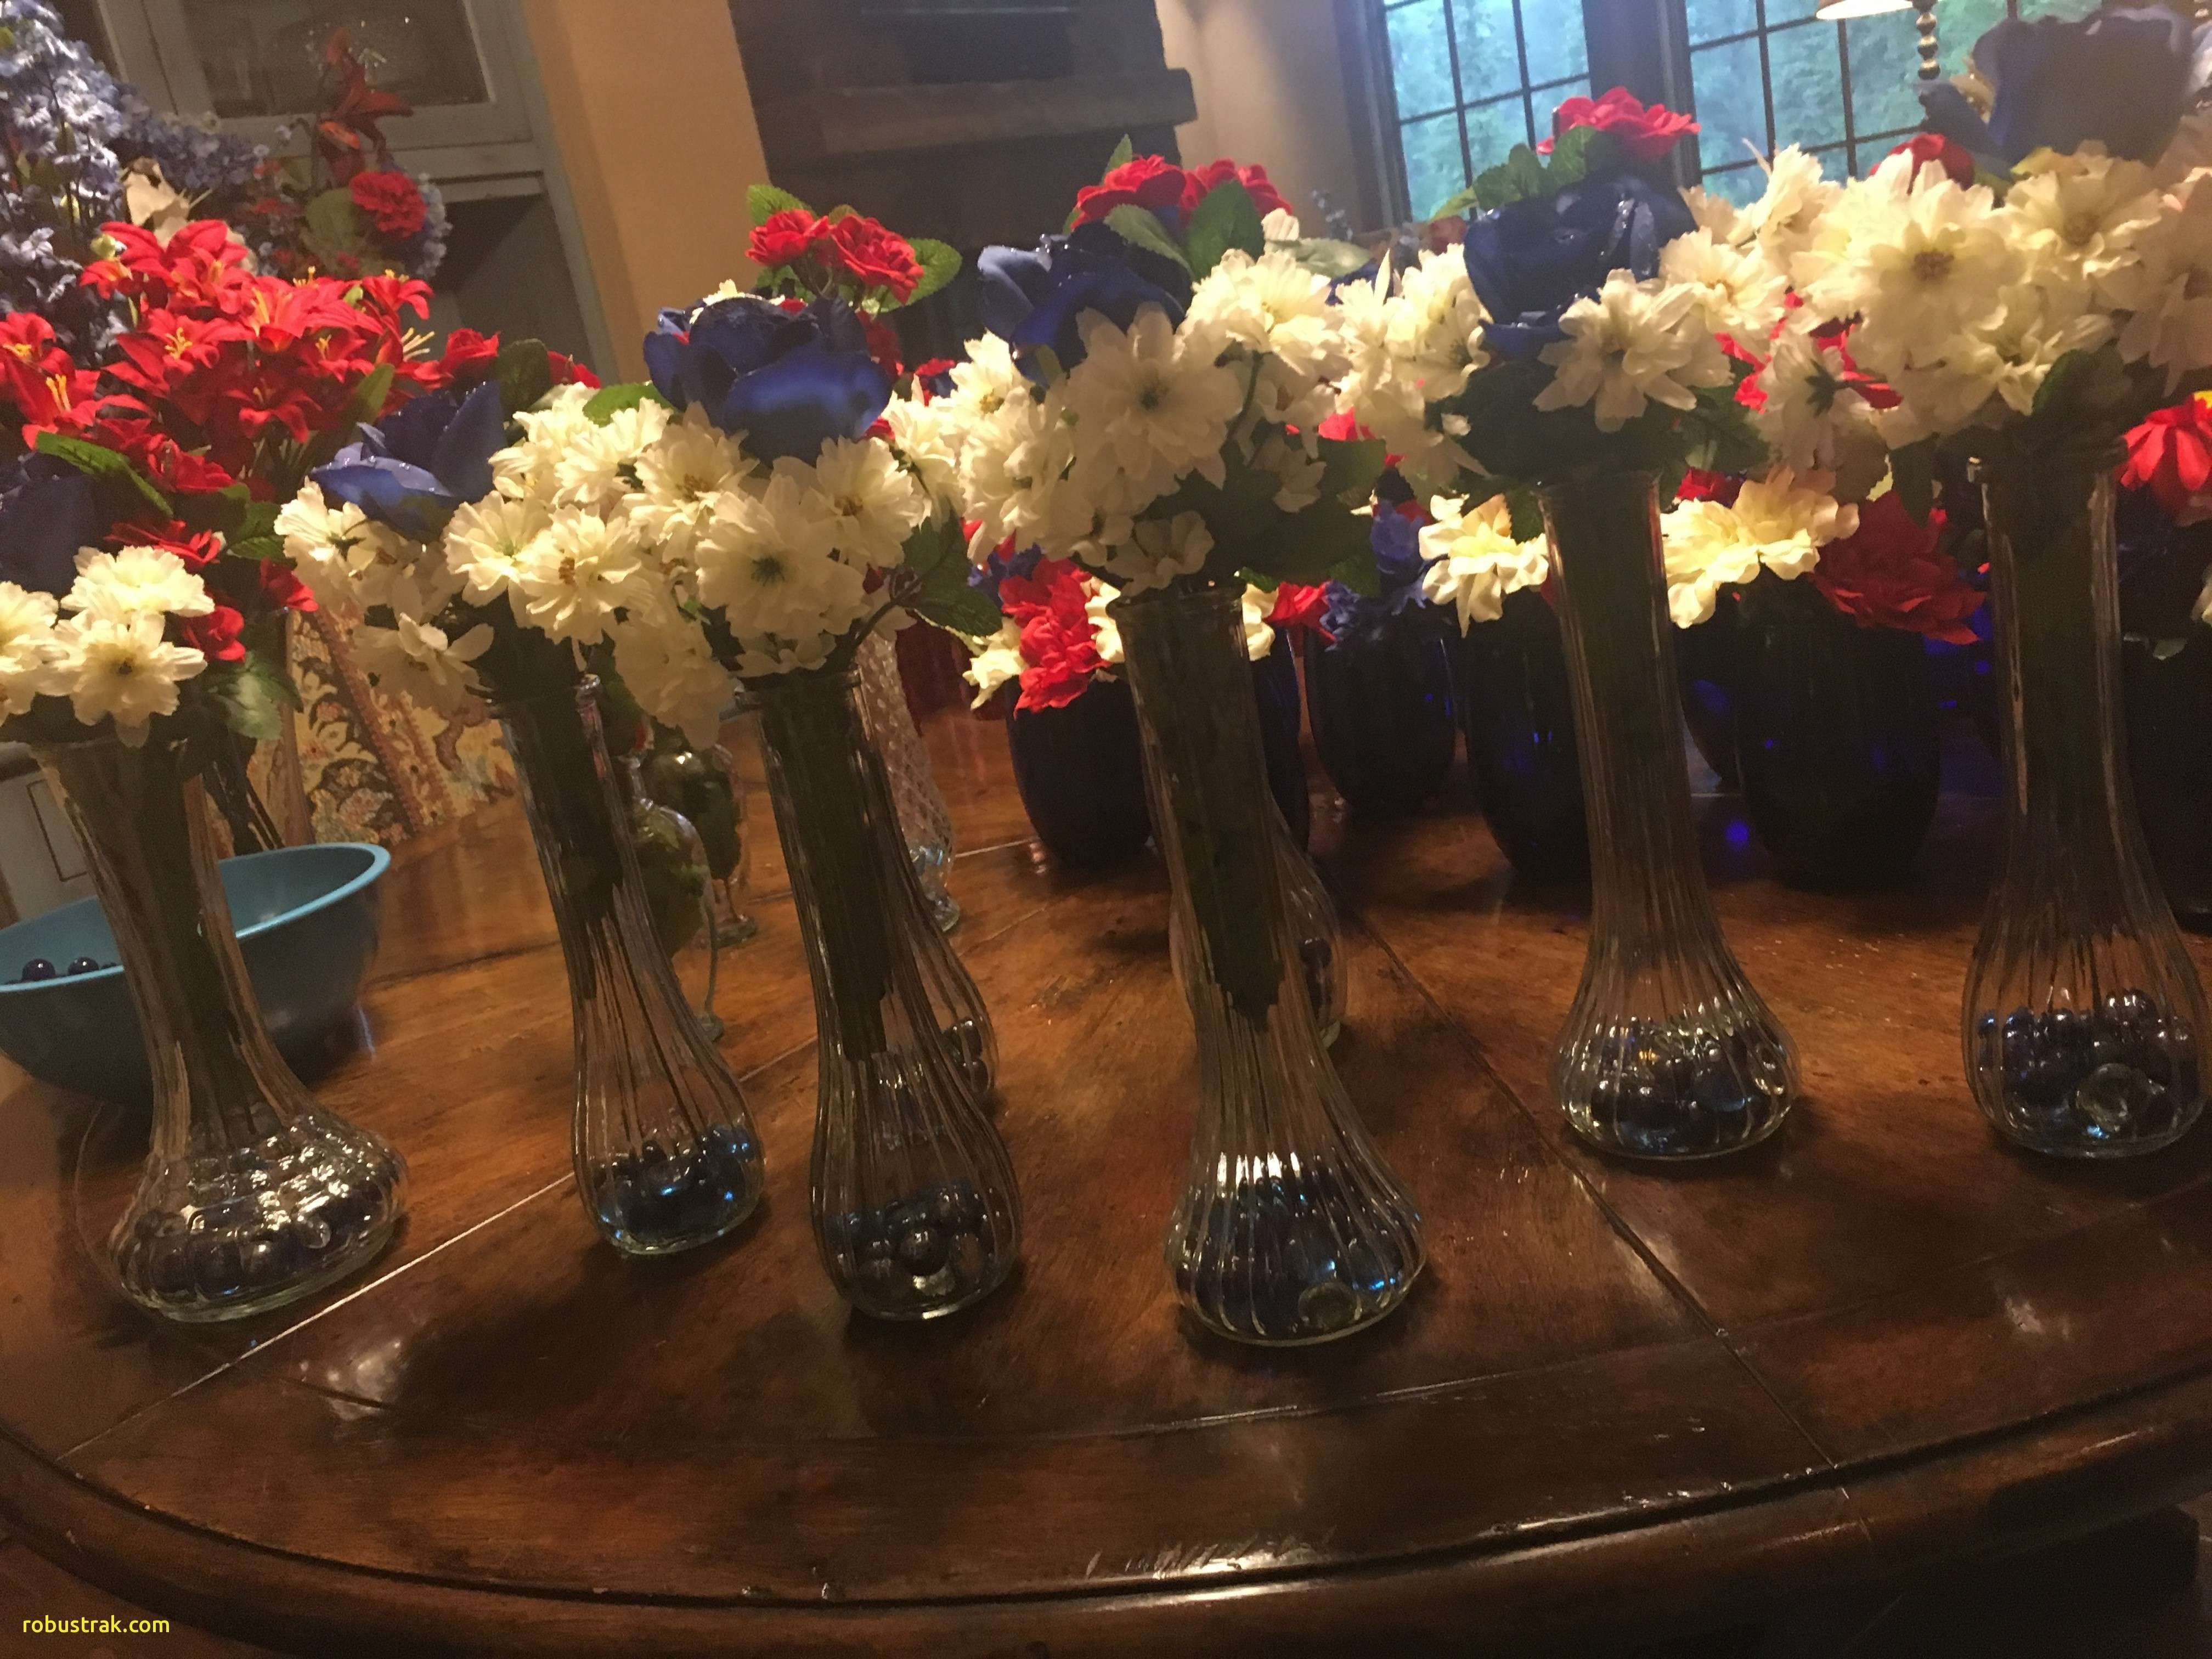 flower vases wholesale los angeles of 24 types of vases for flowers the weekly world regarding floral wedding decoration ideas lovely dollar tree wedding